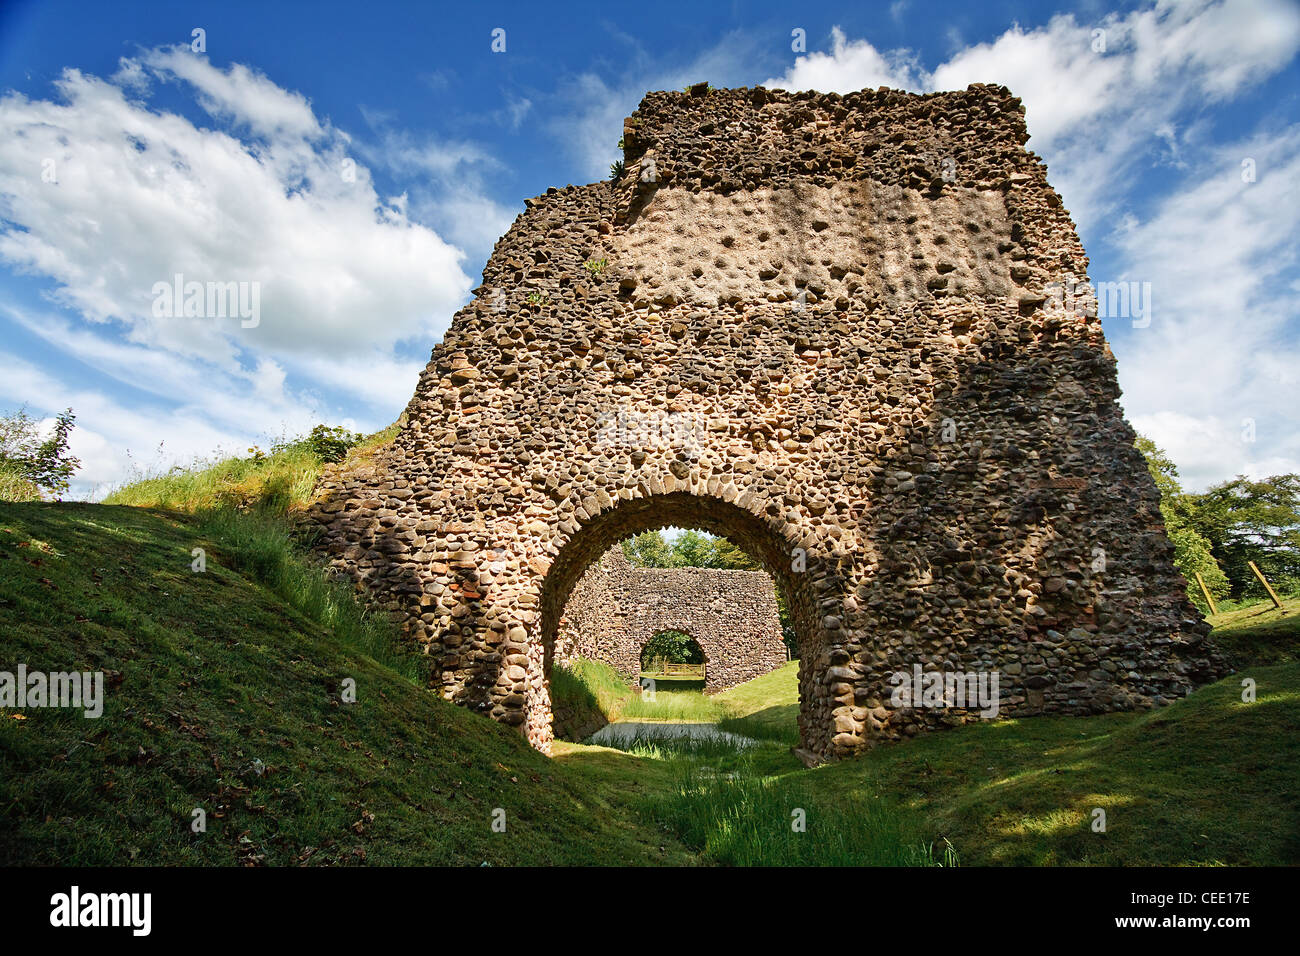 Lochmaben Castle a ruined castle in Scotland situated on the banks of Castle Loch near the village of Lochmaben - Stock Image